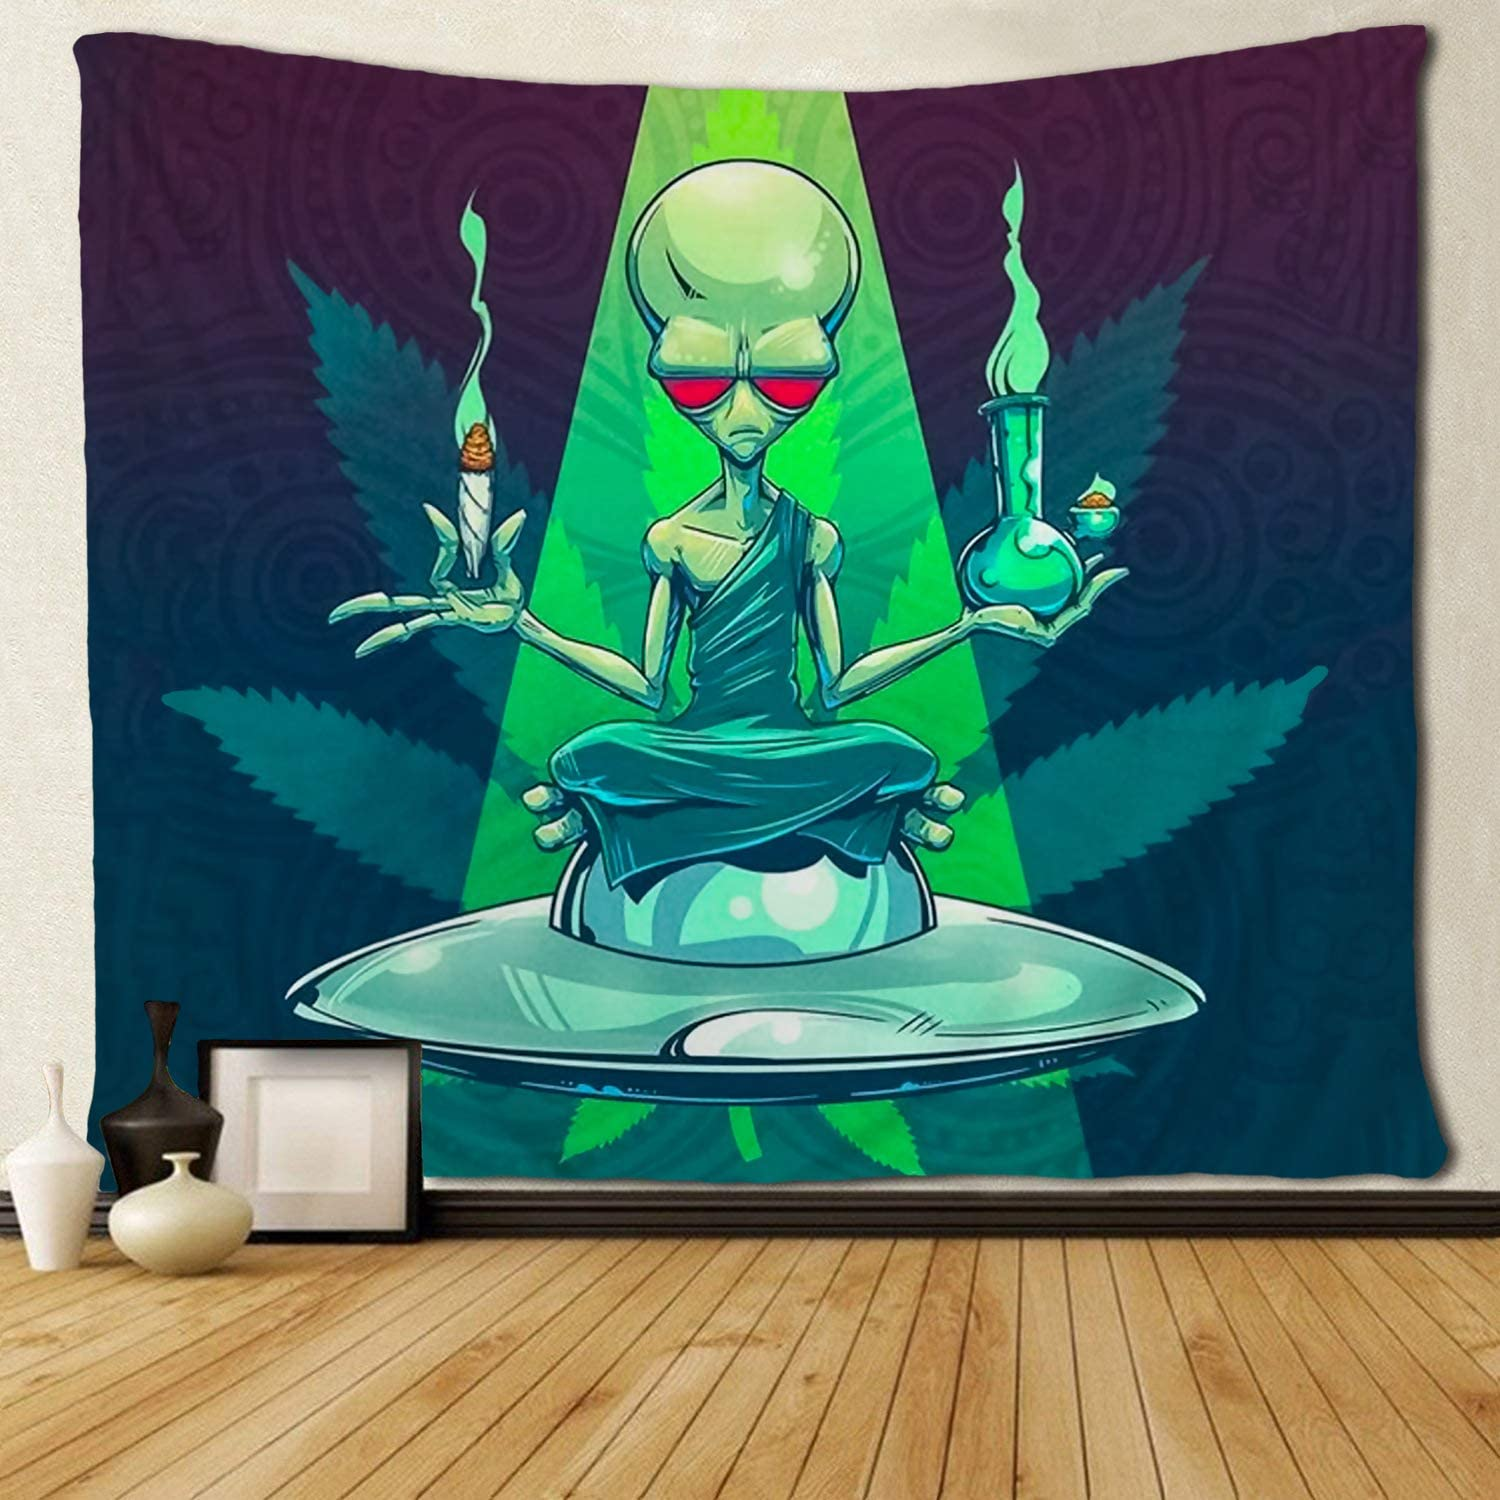 SARA NELL Magical Trippy Psychedelic Tapestry Cool Alien Take Cigar and Drug Marijuana Leaf Weed Tapestries Wall Hanging Hippie Art 50x60 Inches Home Decoration Dorm Decor for Living Room Bedroom